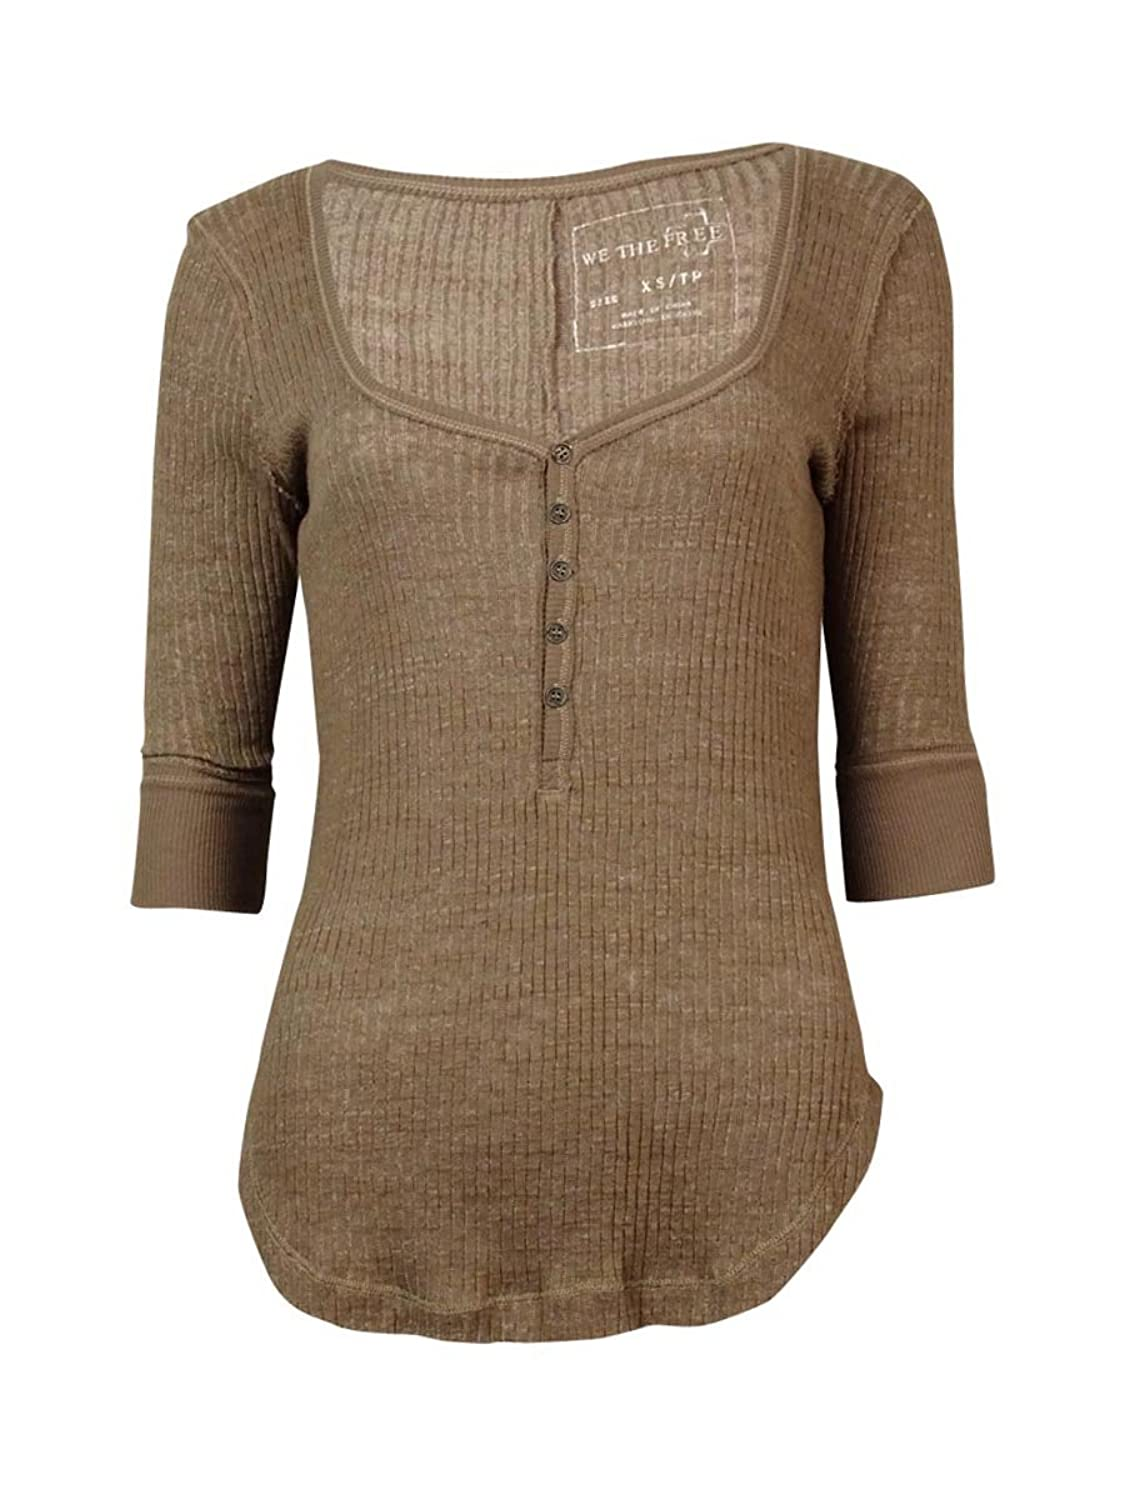 Free People Women's Plunging Neckline Slub Henley Top Taupe Brown Size Large